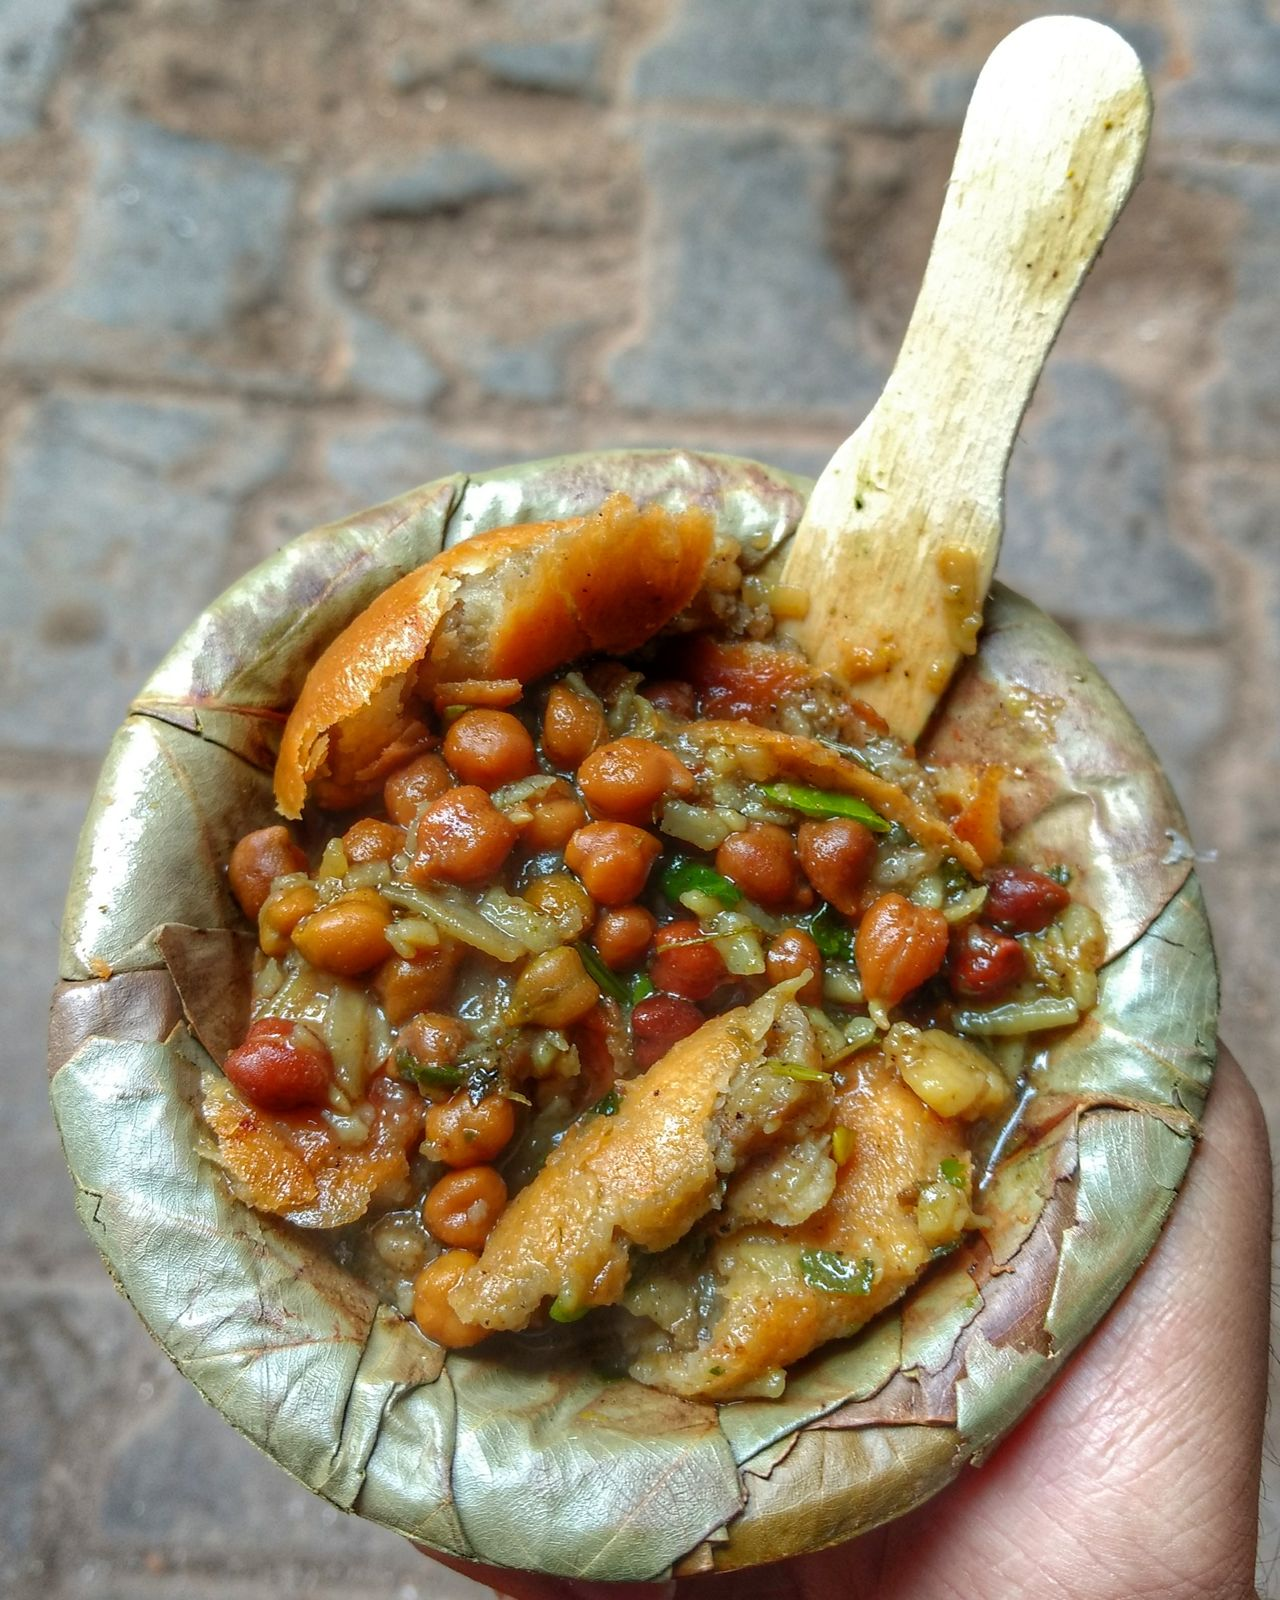 Kachori Chana Streetfood Varanasi India Foodporn Tamarind Spice Yummy Delicious BestofEyeEm Food Breakfast Local Street Morningfood